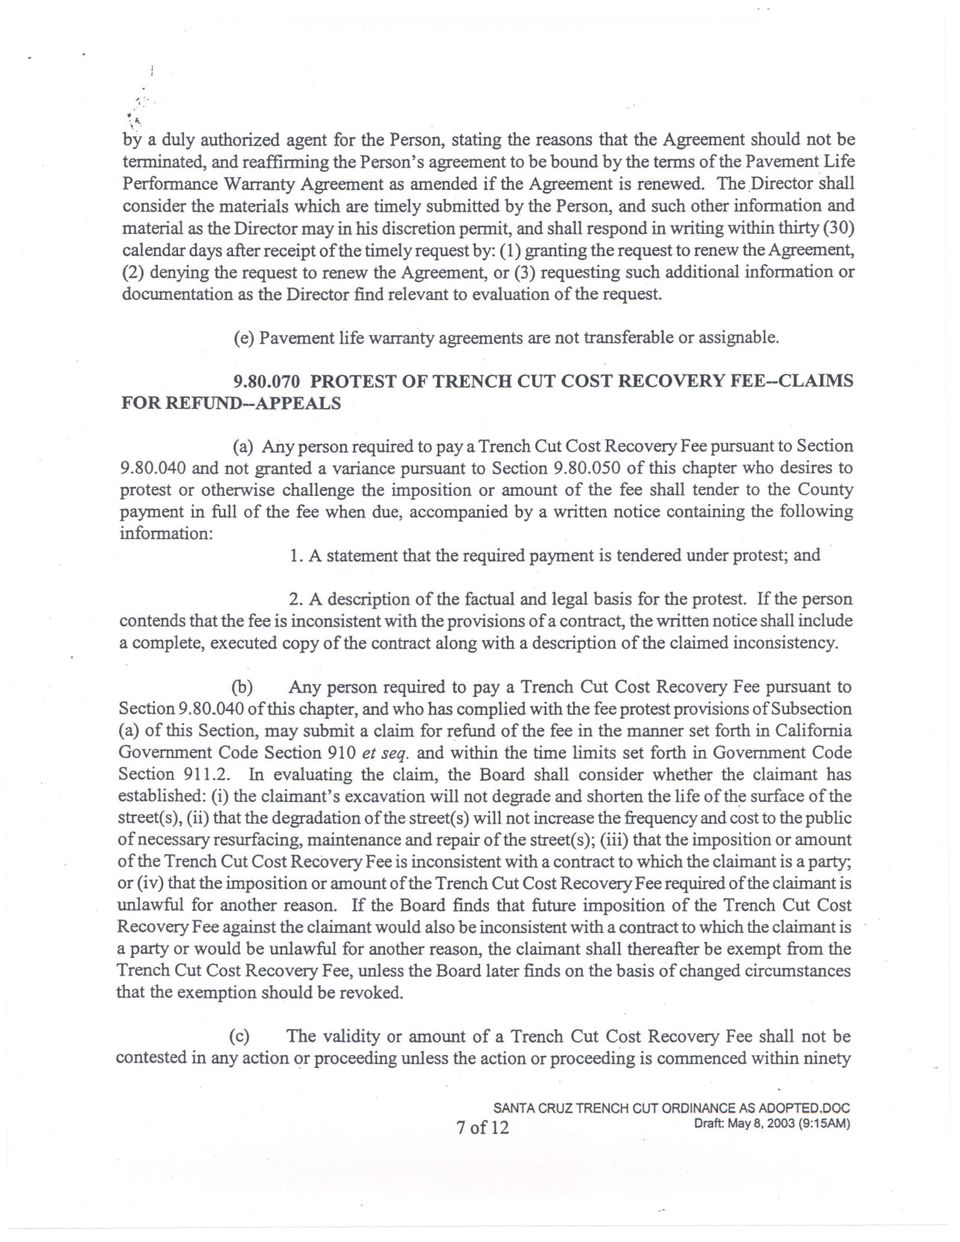 Perfonnance Warranty Agreement as amended if the Agreement is renewed. The.